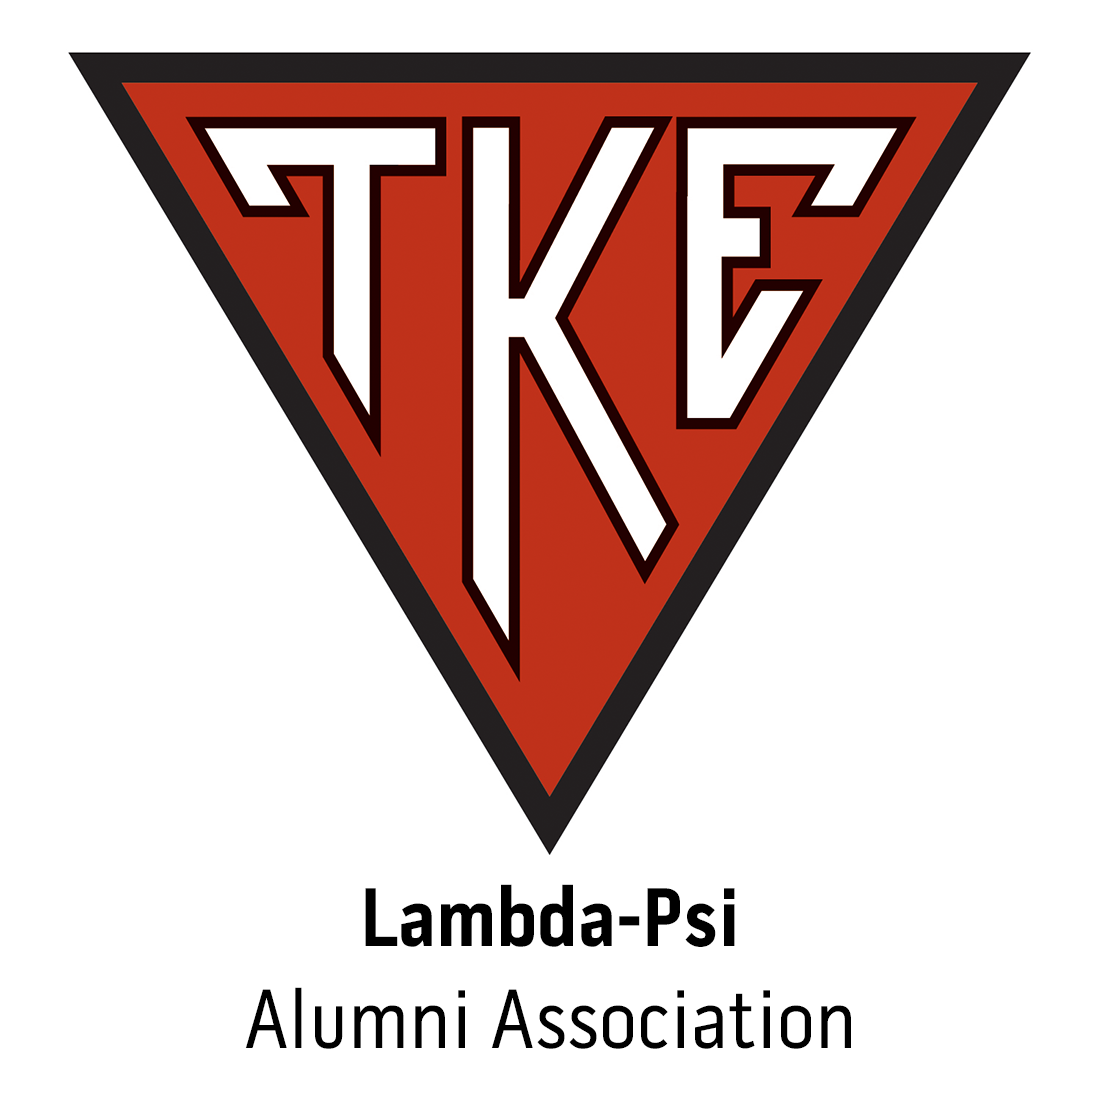 Lambda-Psi Alumni Association at East Carolina University